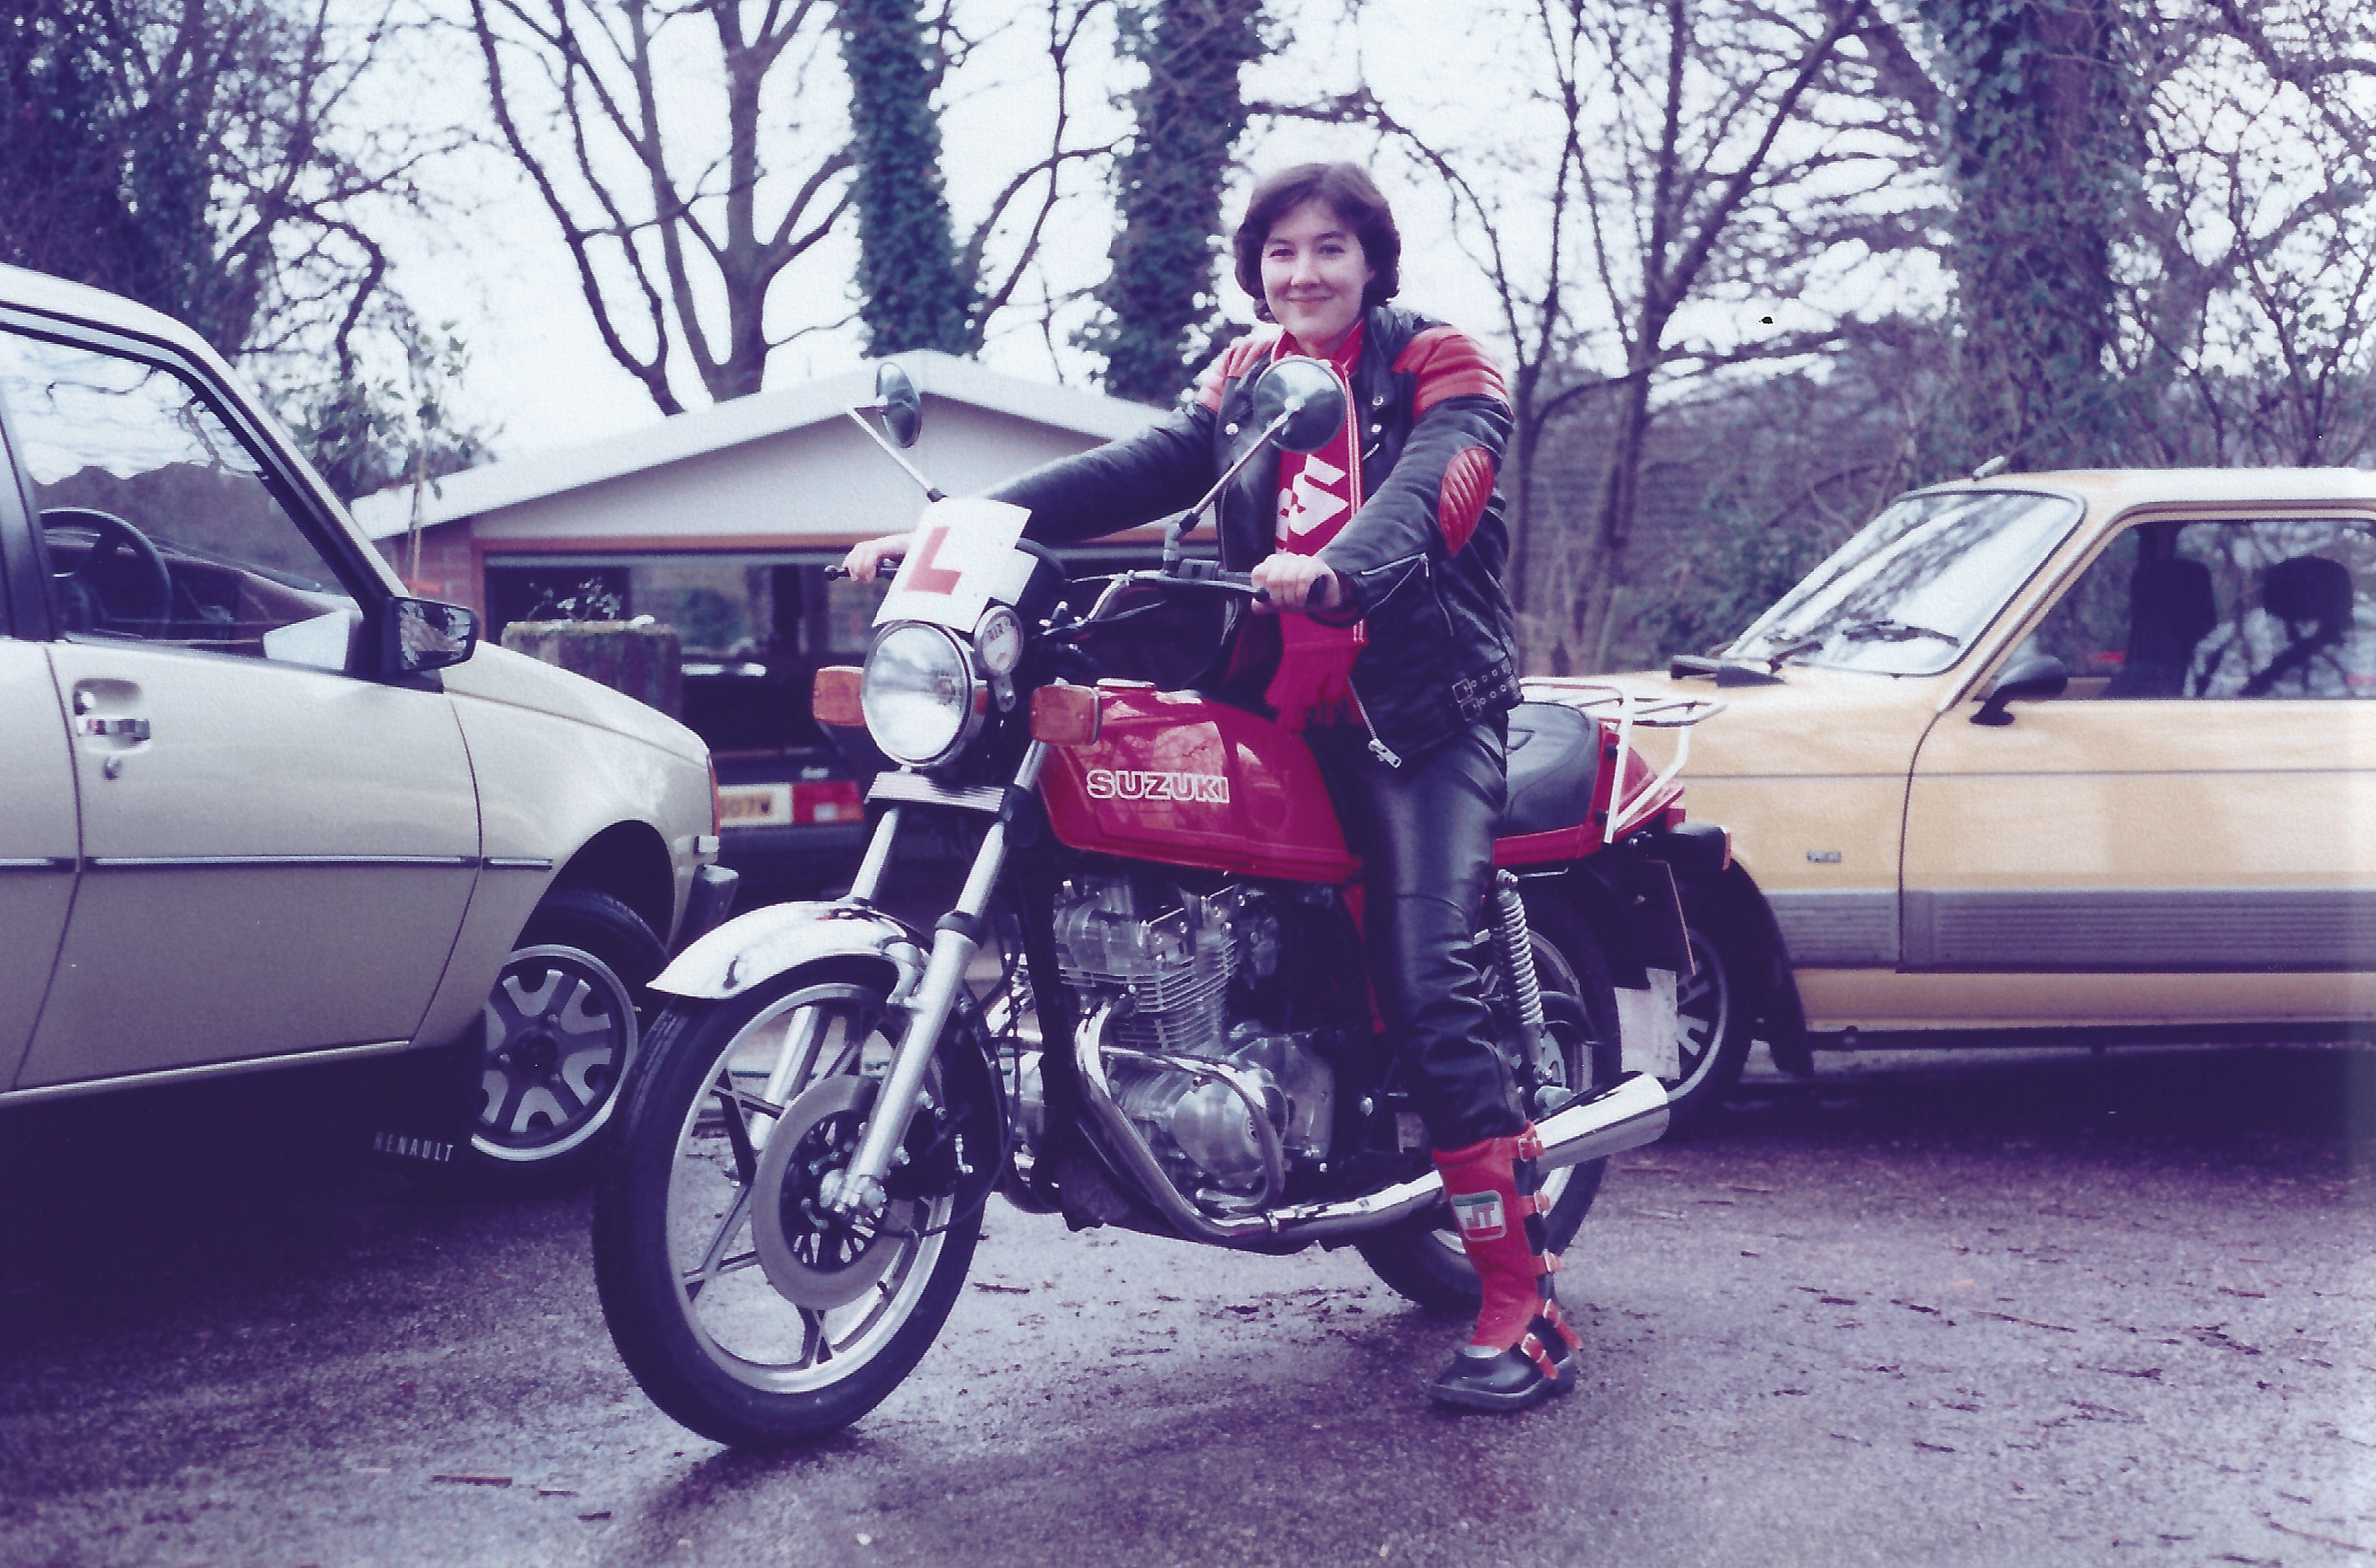 A front three quarters view of Lynda Poynter, helmetless and wearing a black and red leather jacket, black leather trousers and black and red moto-cross style boots sits on her shiny, new, red Suzuki GSX250 which sports a high level mounted L Plate.  Three Renault cars are in the background including a Renault Fuego in the garage